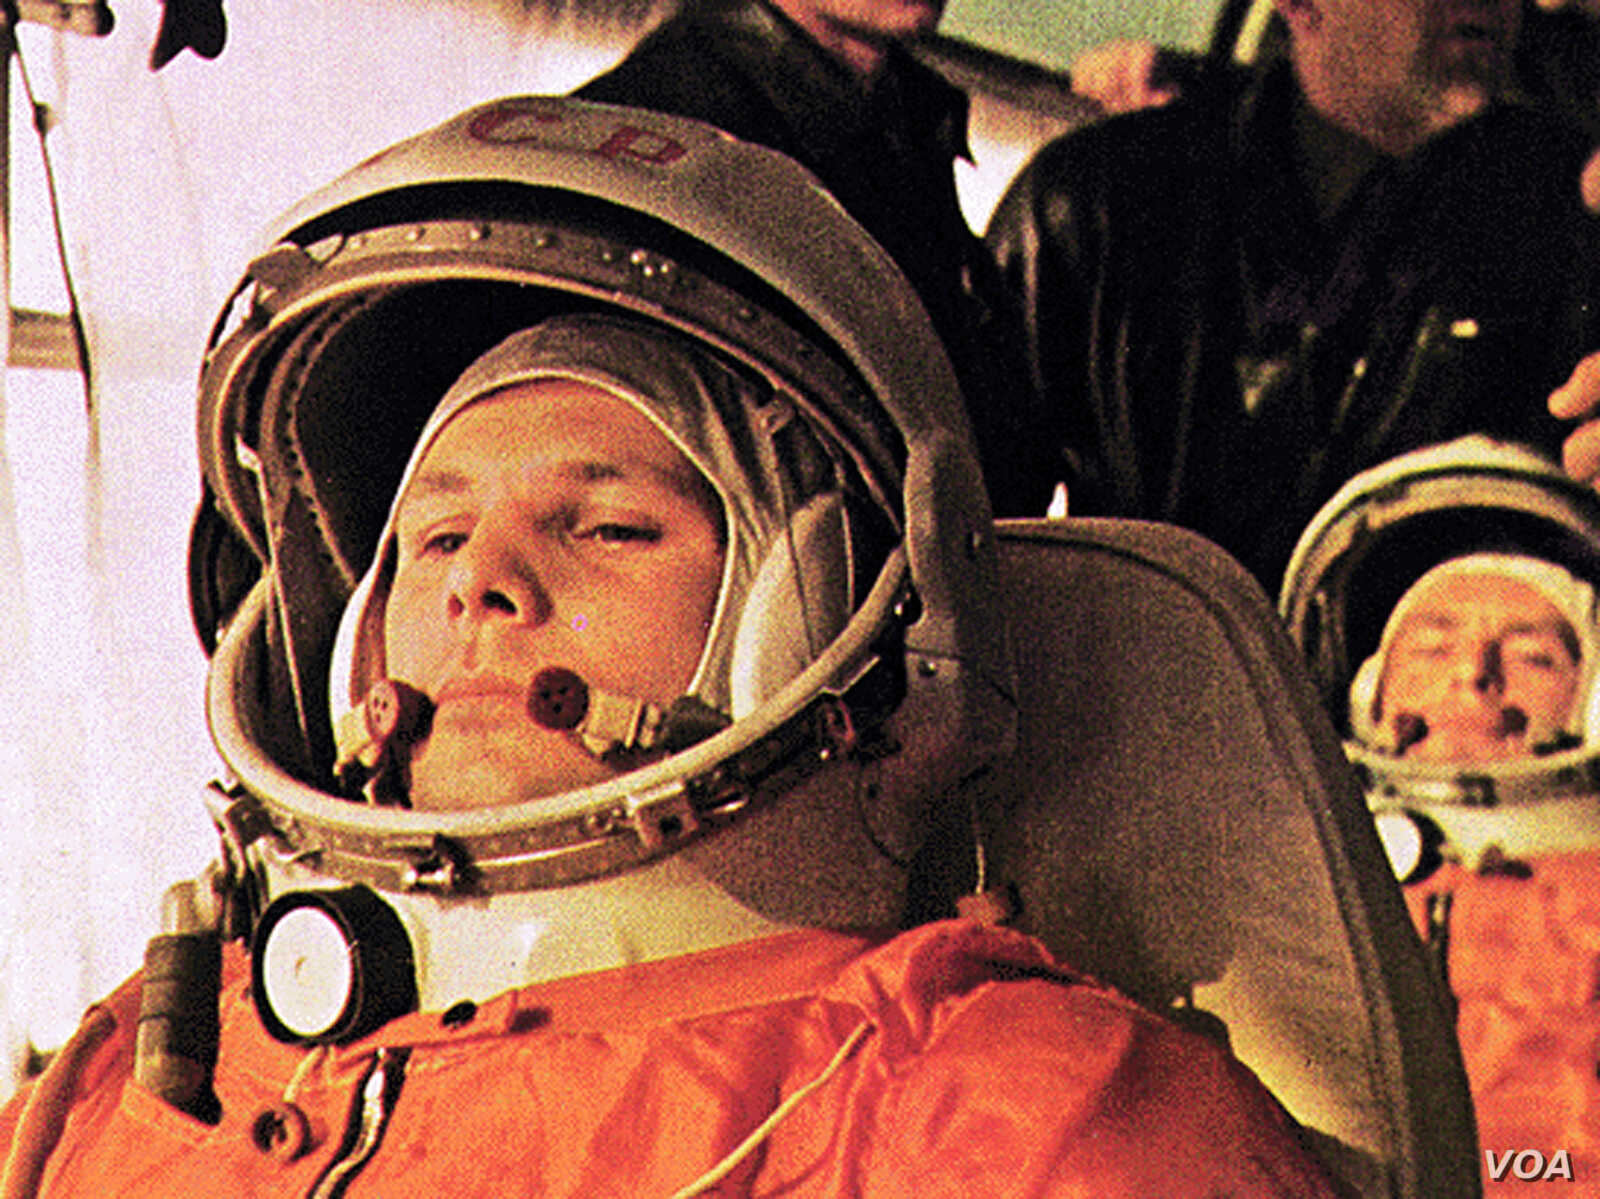 Soviet cosmonaut Yuri Gagarin, pilot of the Vostok 1, is on the bus on the way to the launch.